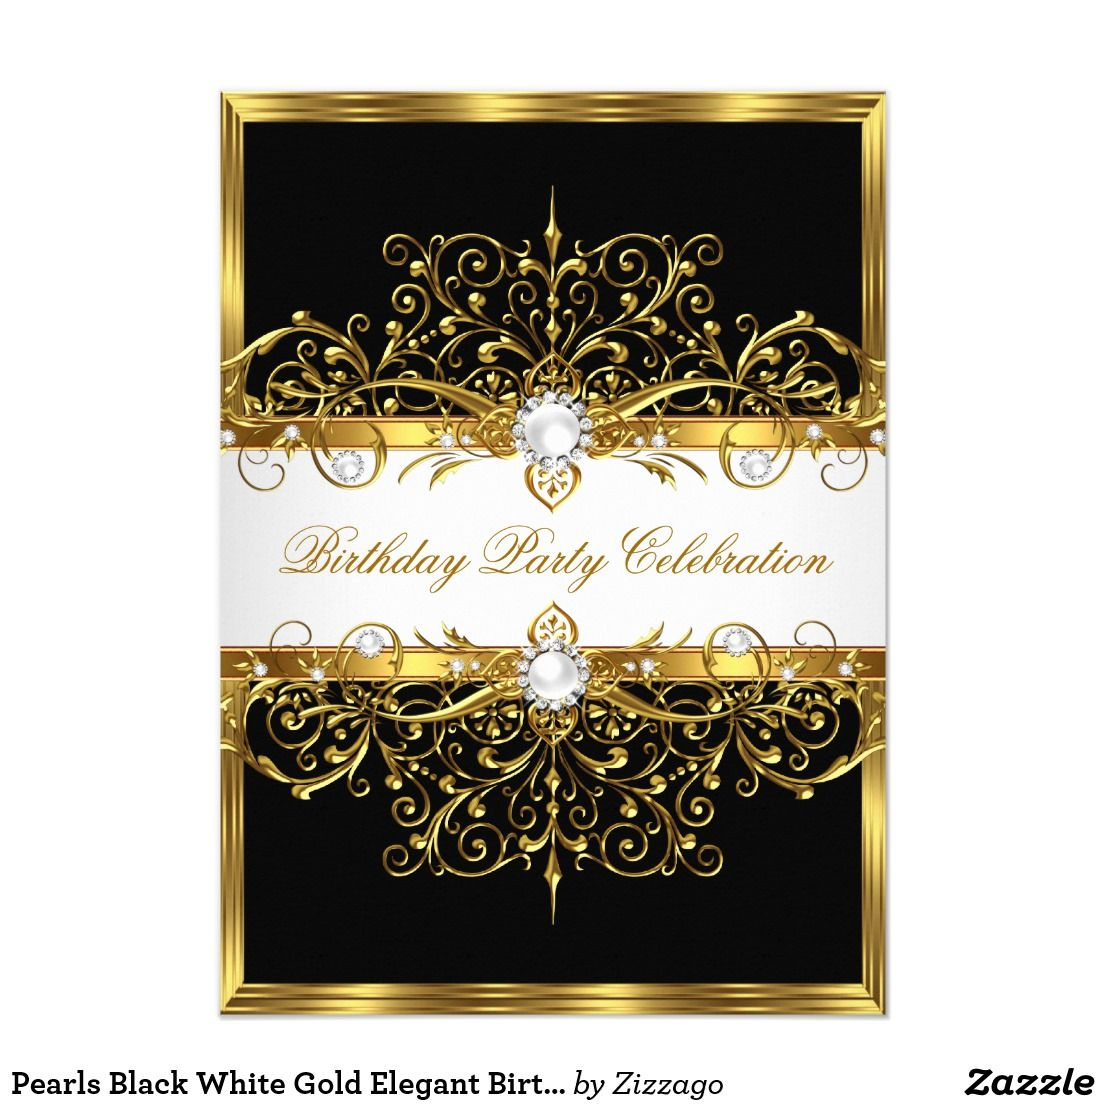 Happy birthday sign in elegant black script type with ornament - Pearls Black White Gold Elegant Birthday Party Card Pearl Black White Gold Elegant Birthday Party